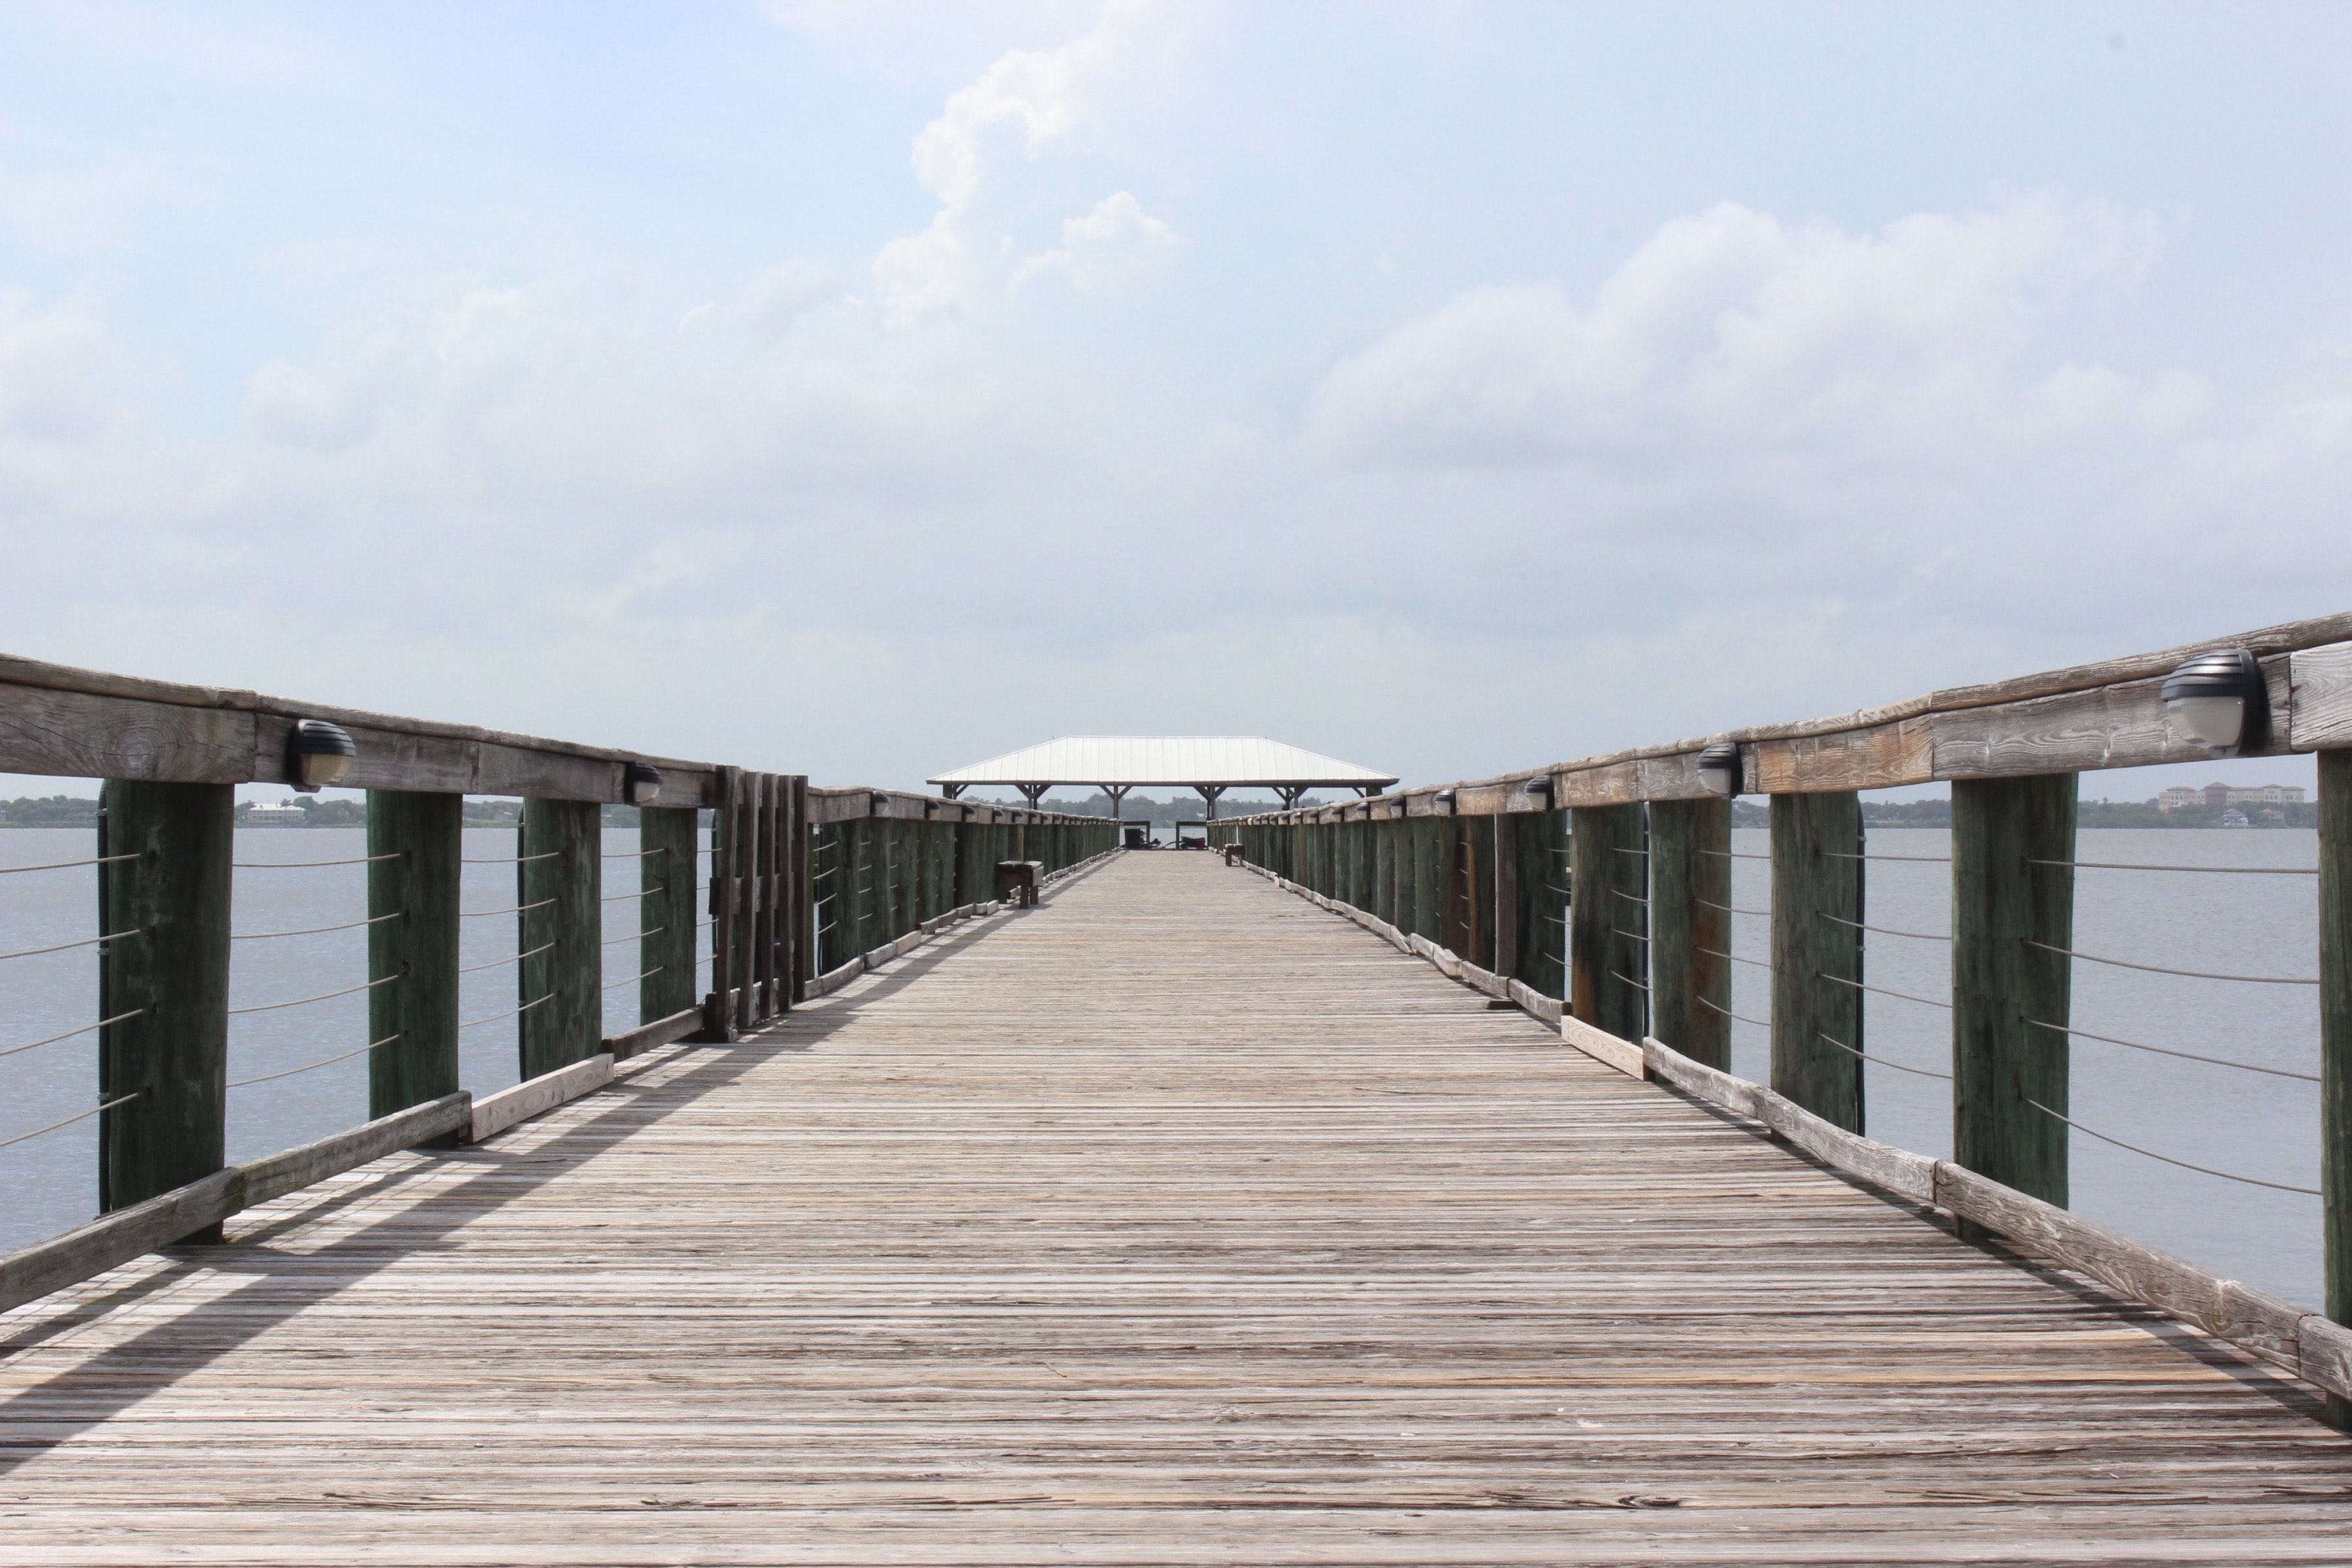 View of the wooden pier walkway with a pavilion at the Melbourne Beach